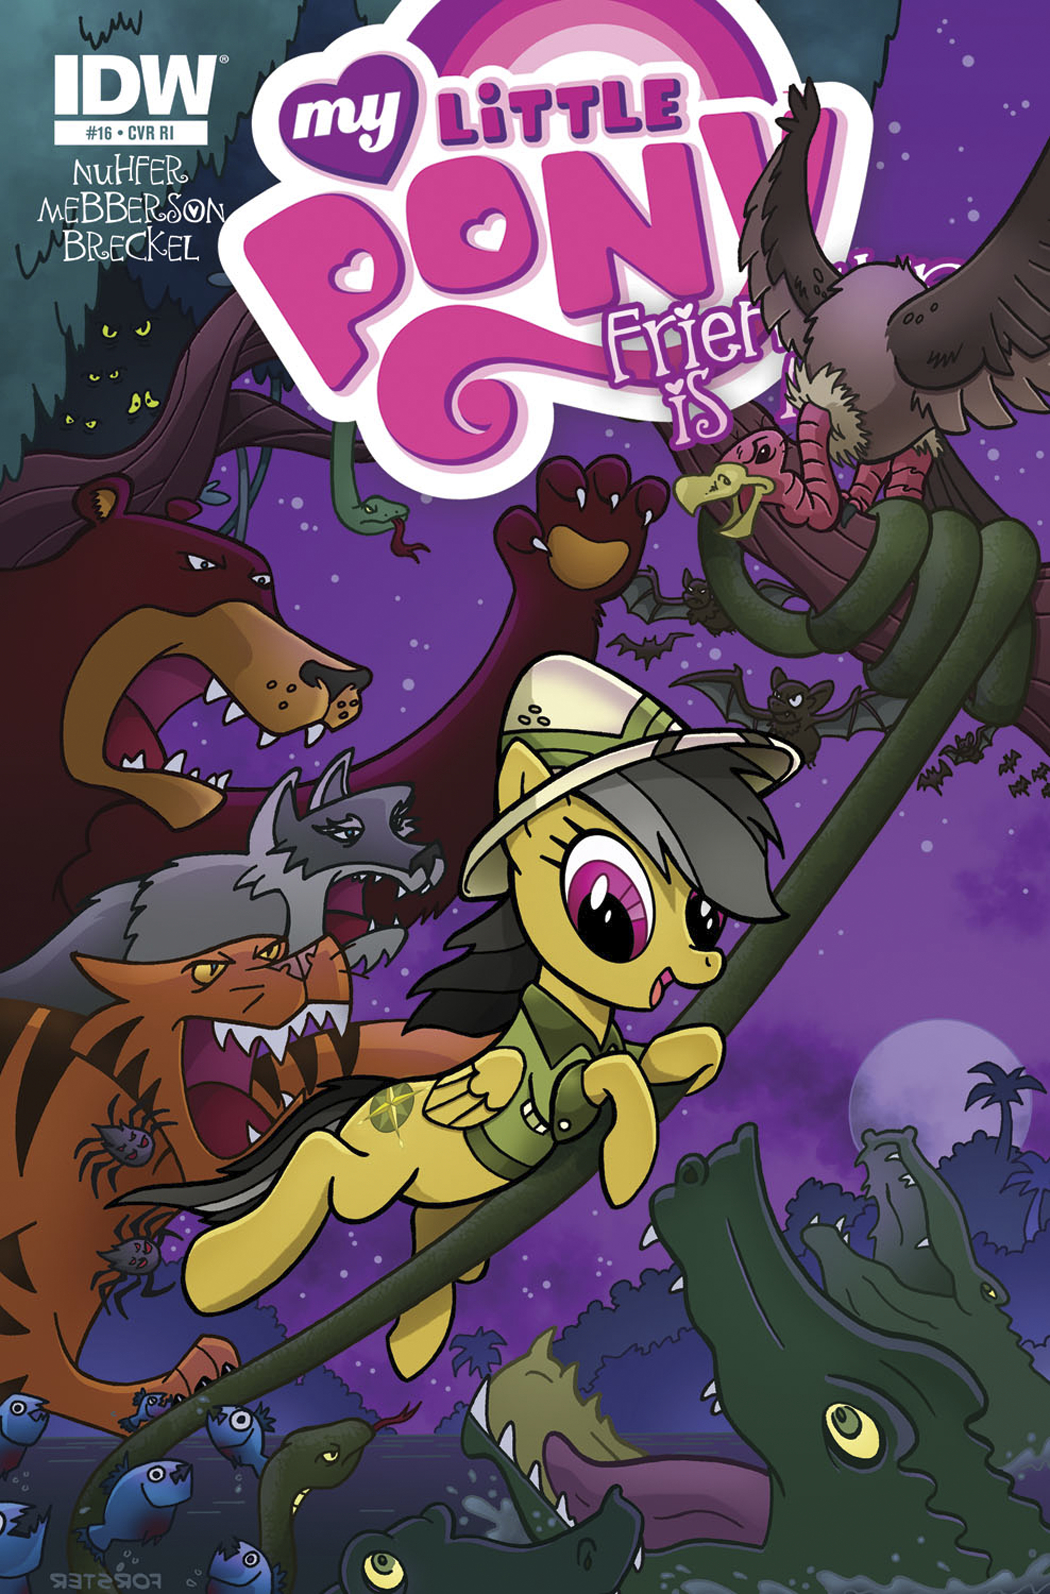 MY LITTLE PONY FRIENDSHIP IS MAGIC #16 FREE 10 COPY INCV